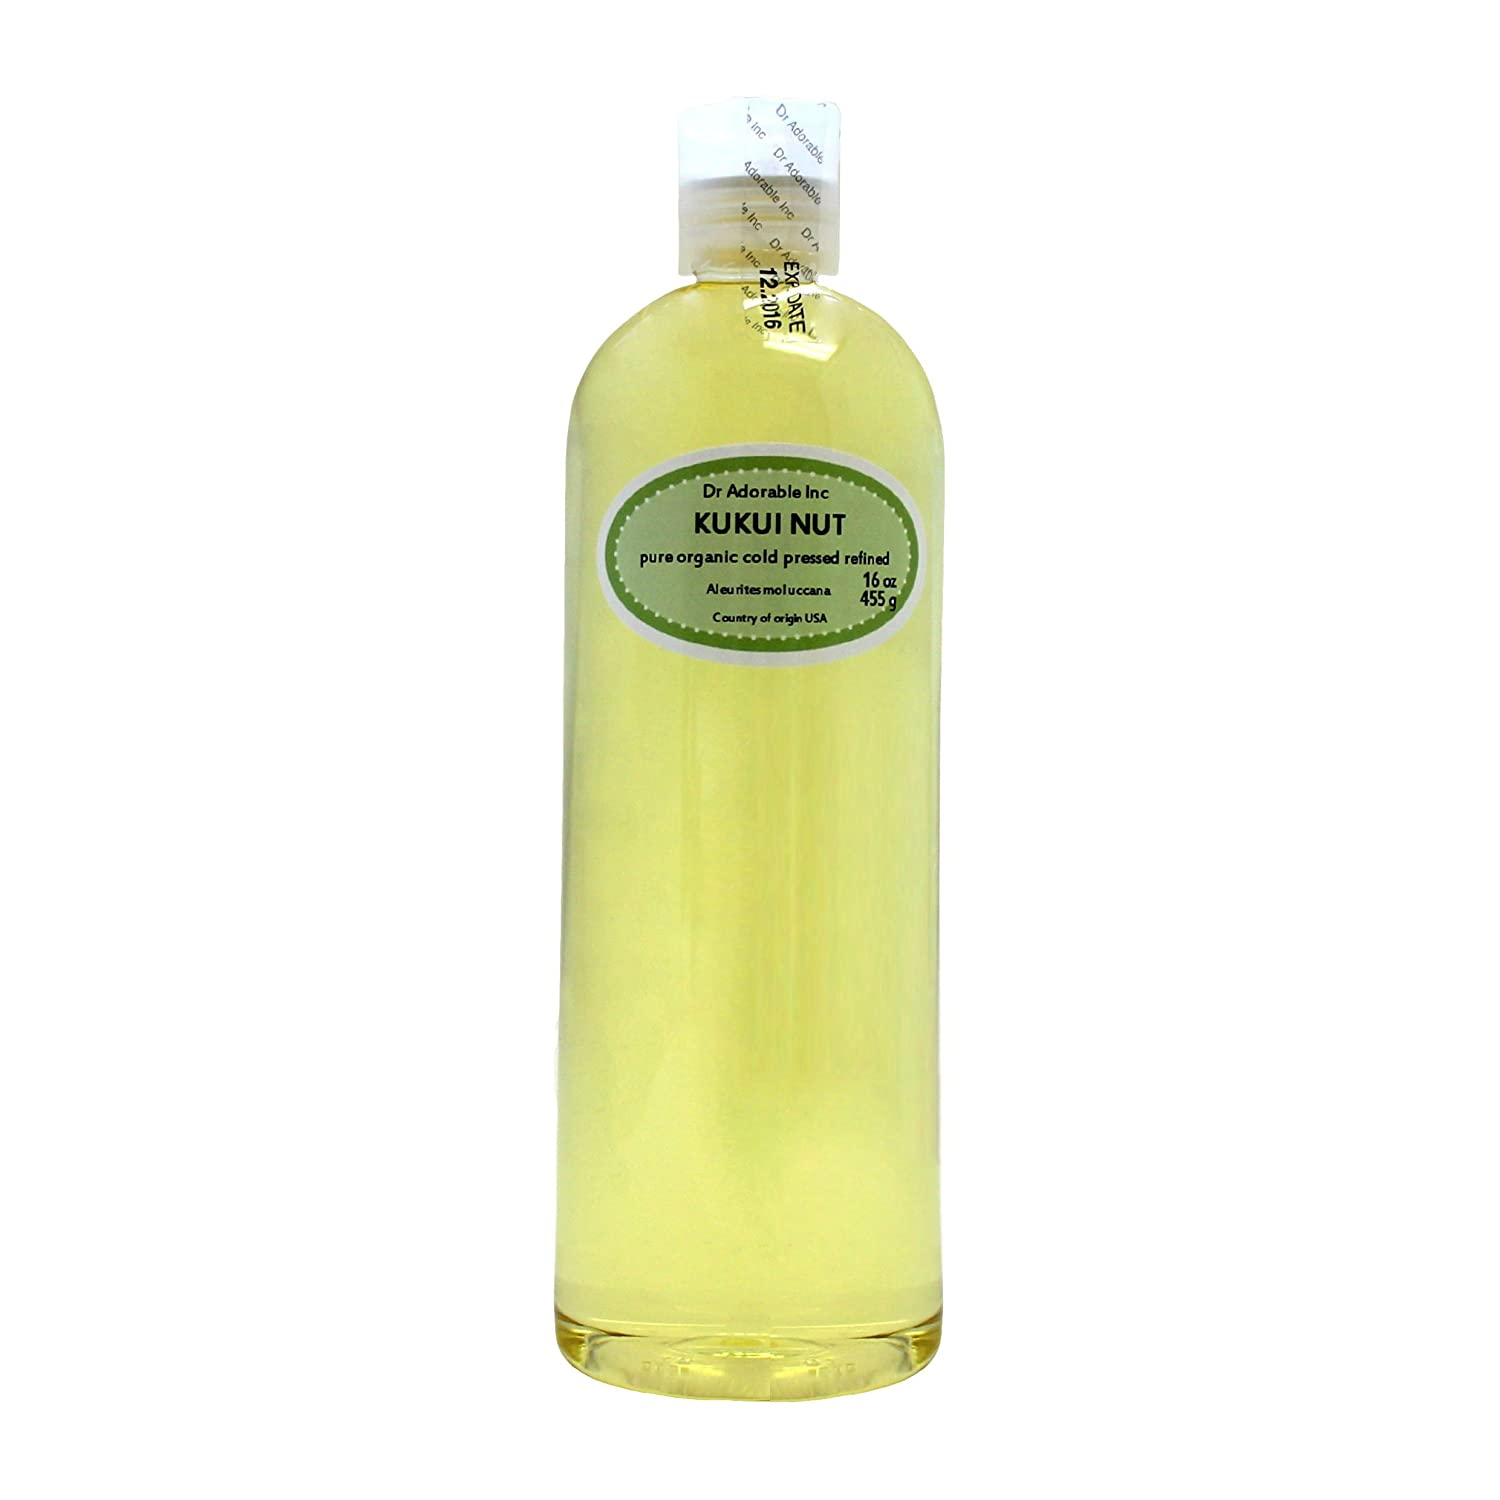 Organic Pure Carrier Oils Cold Pressed 16 Oz/1 Pint (Kukui Nut Oil)